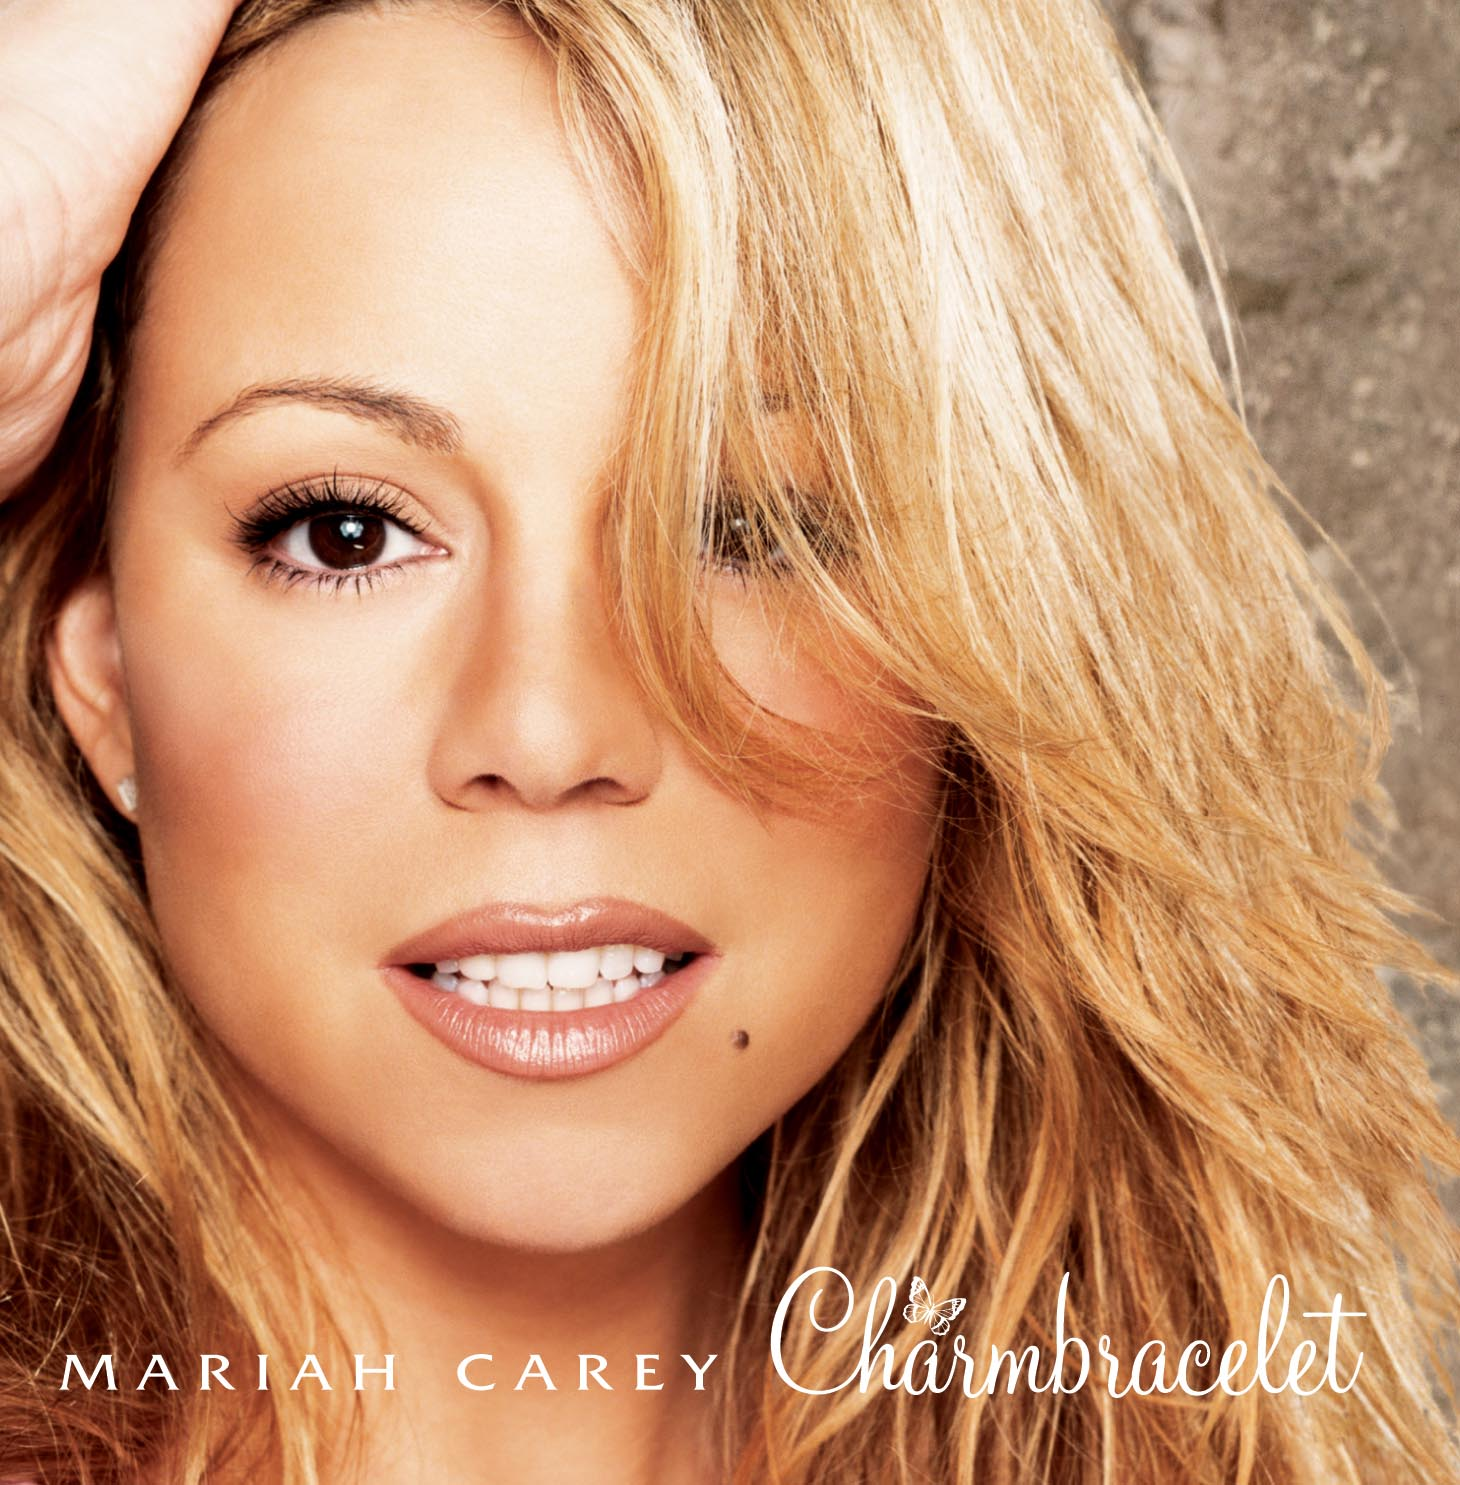 What you hear on the album is the only time I ever sang it straight through - - Mariah Carey